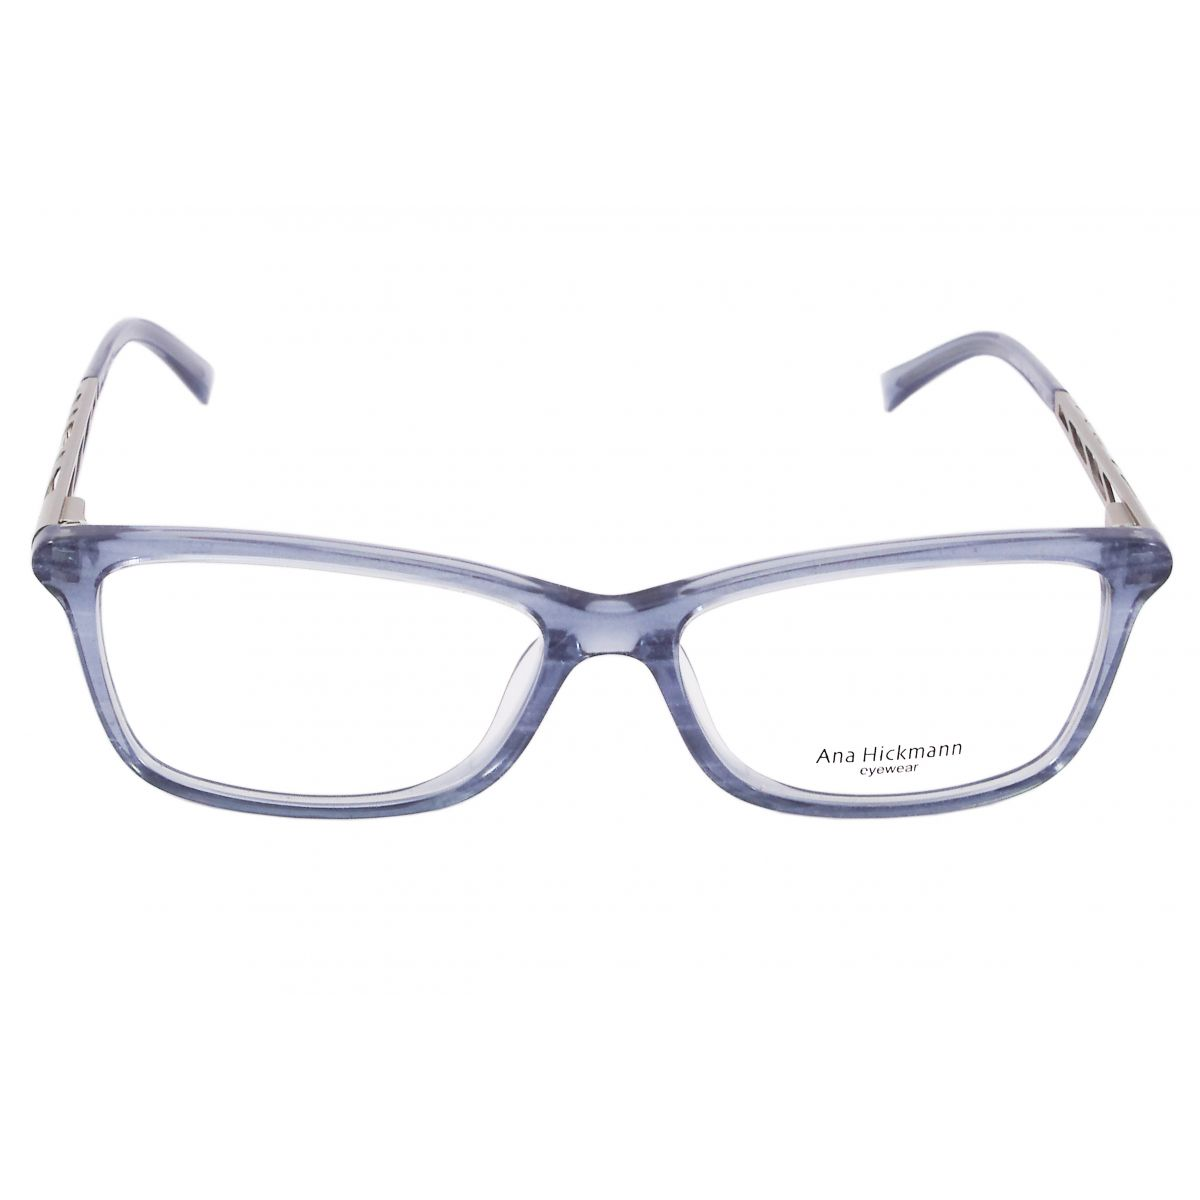 Comprar Oculos De Grau Feminino   City of Kenmore, Washington 9d5cd0b355